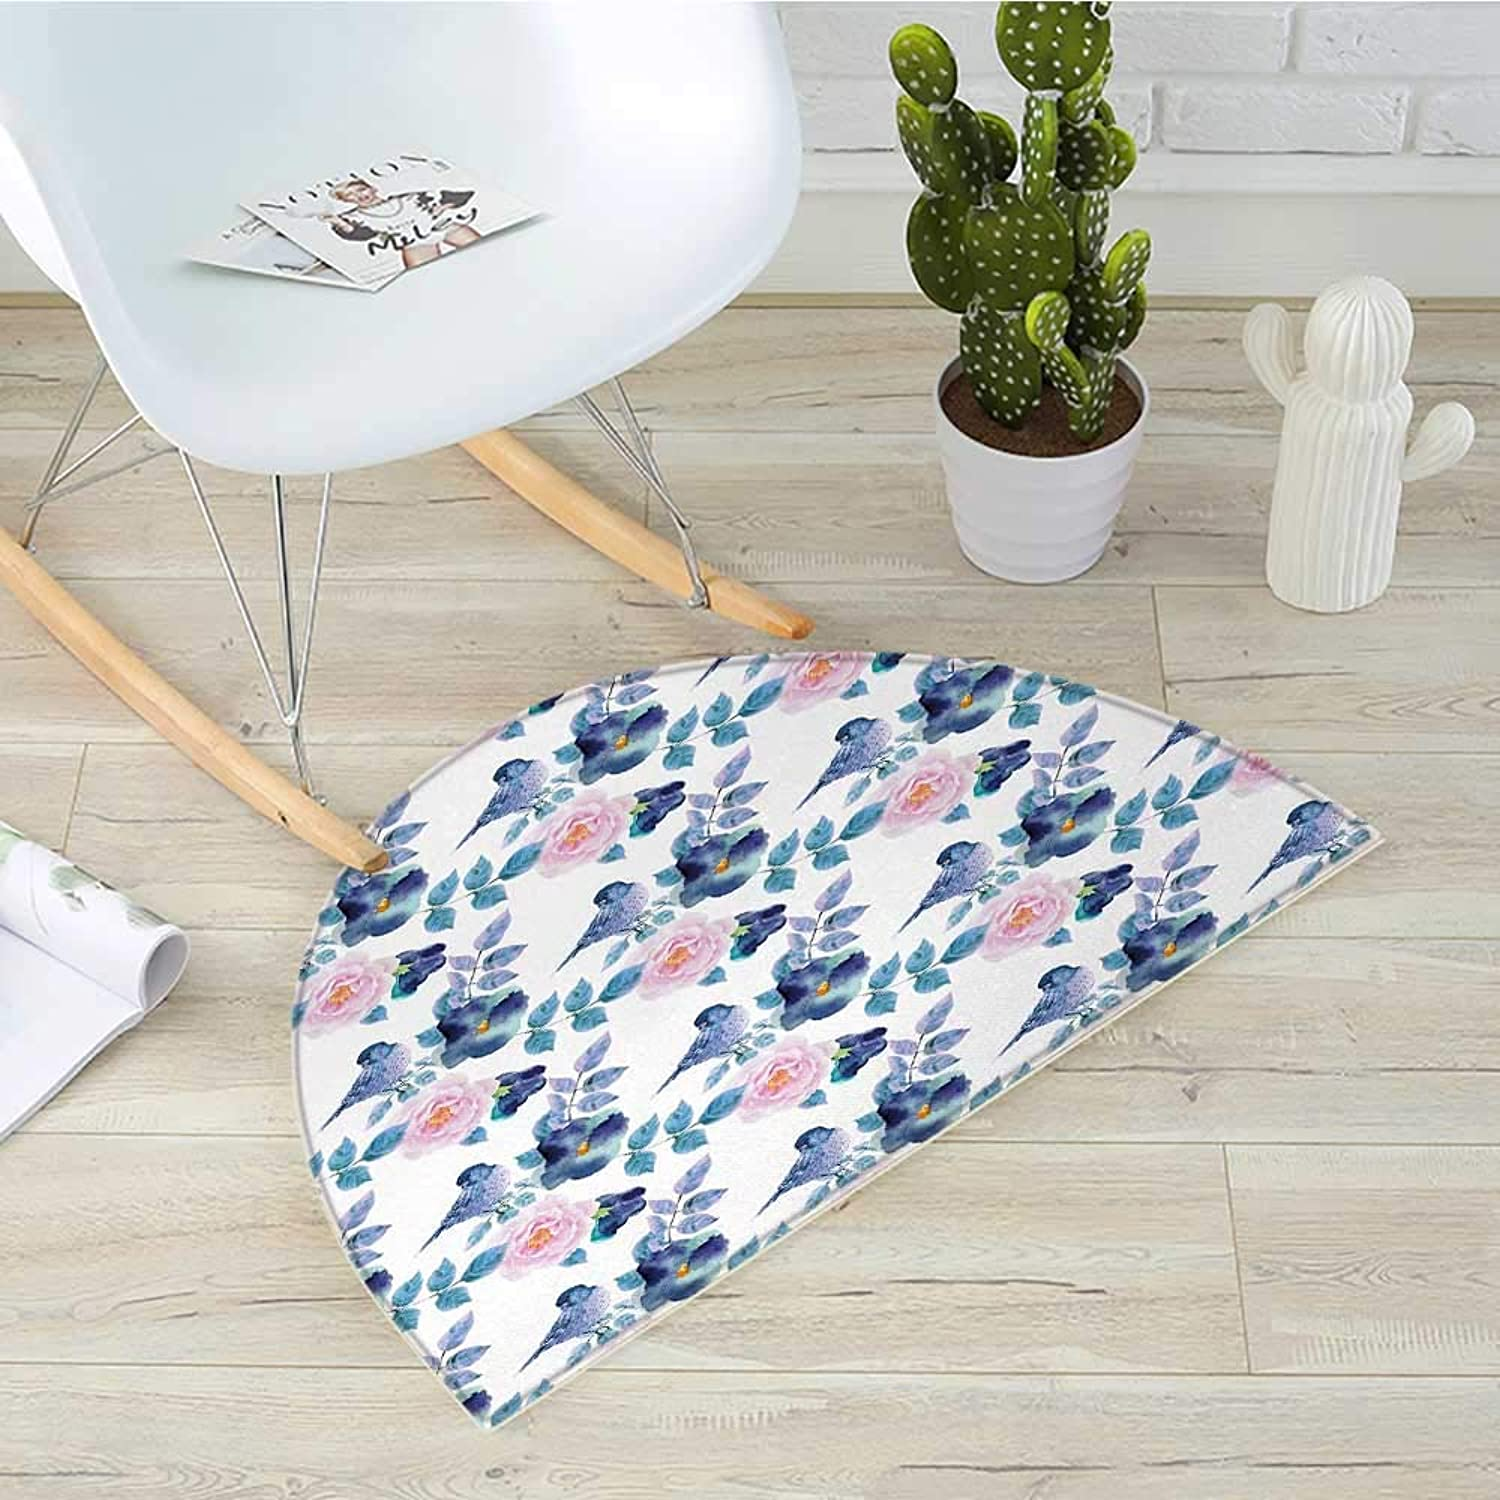 Animal Semicircle Doormat Spring Birds Sparrows with Branches Watercolor Leaves Artwork Halfmoon doormats H 31.5  xD 47.2  Sky bluee White and Royal bluee